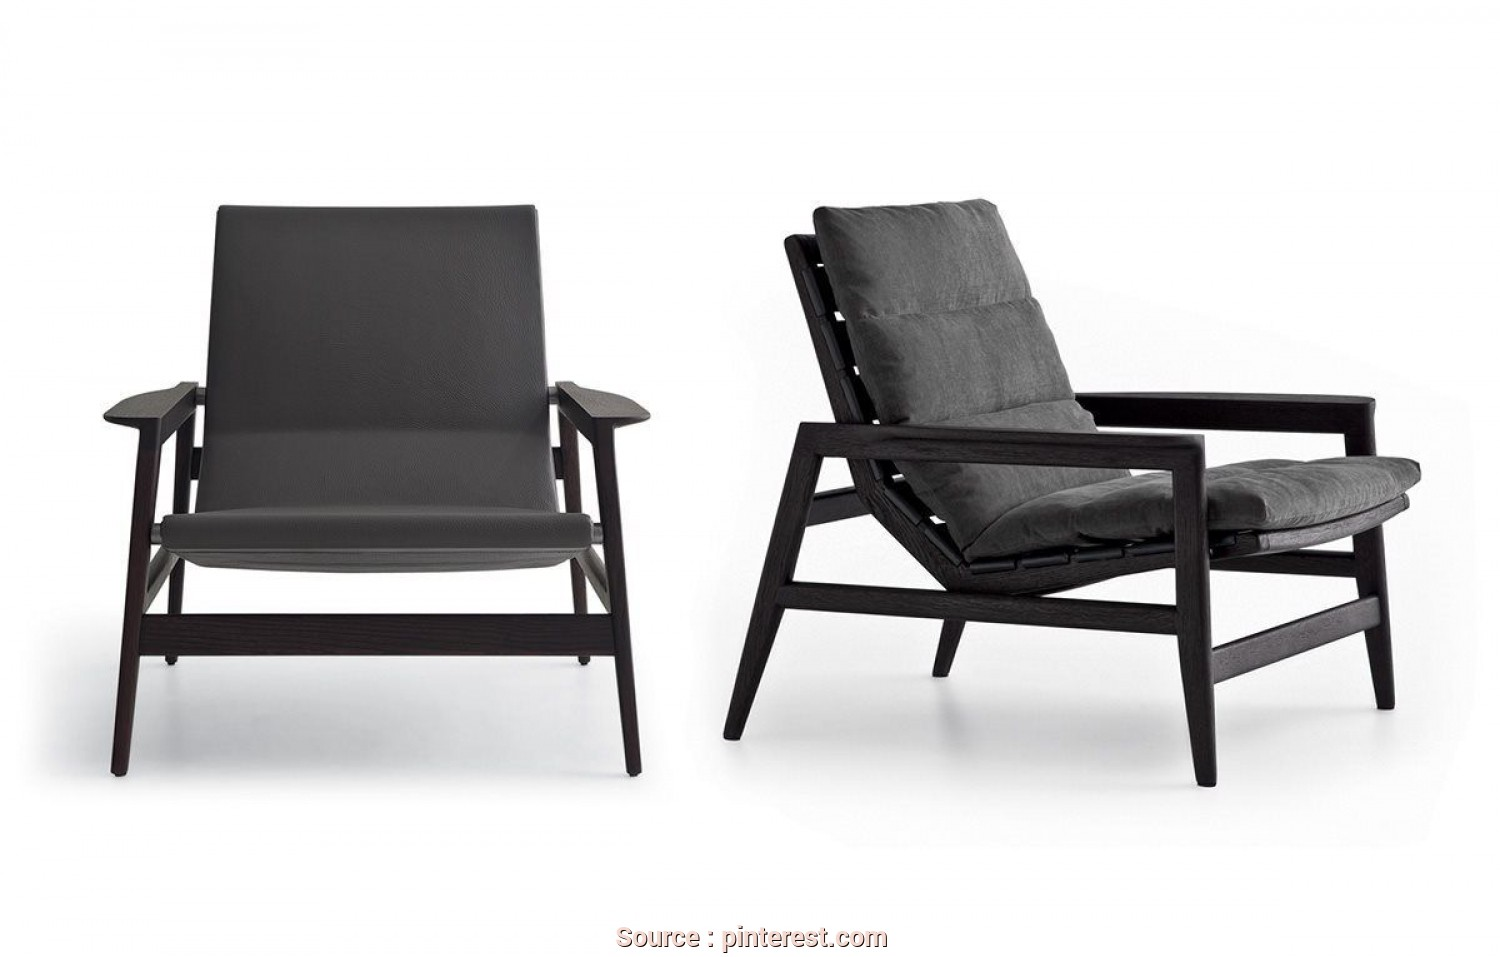 Poltrone Design Vintage, Maestoso POLTRONE, POLIFORM, Ipanema, FURNITURE, Armchair, Chair